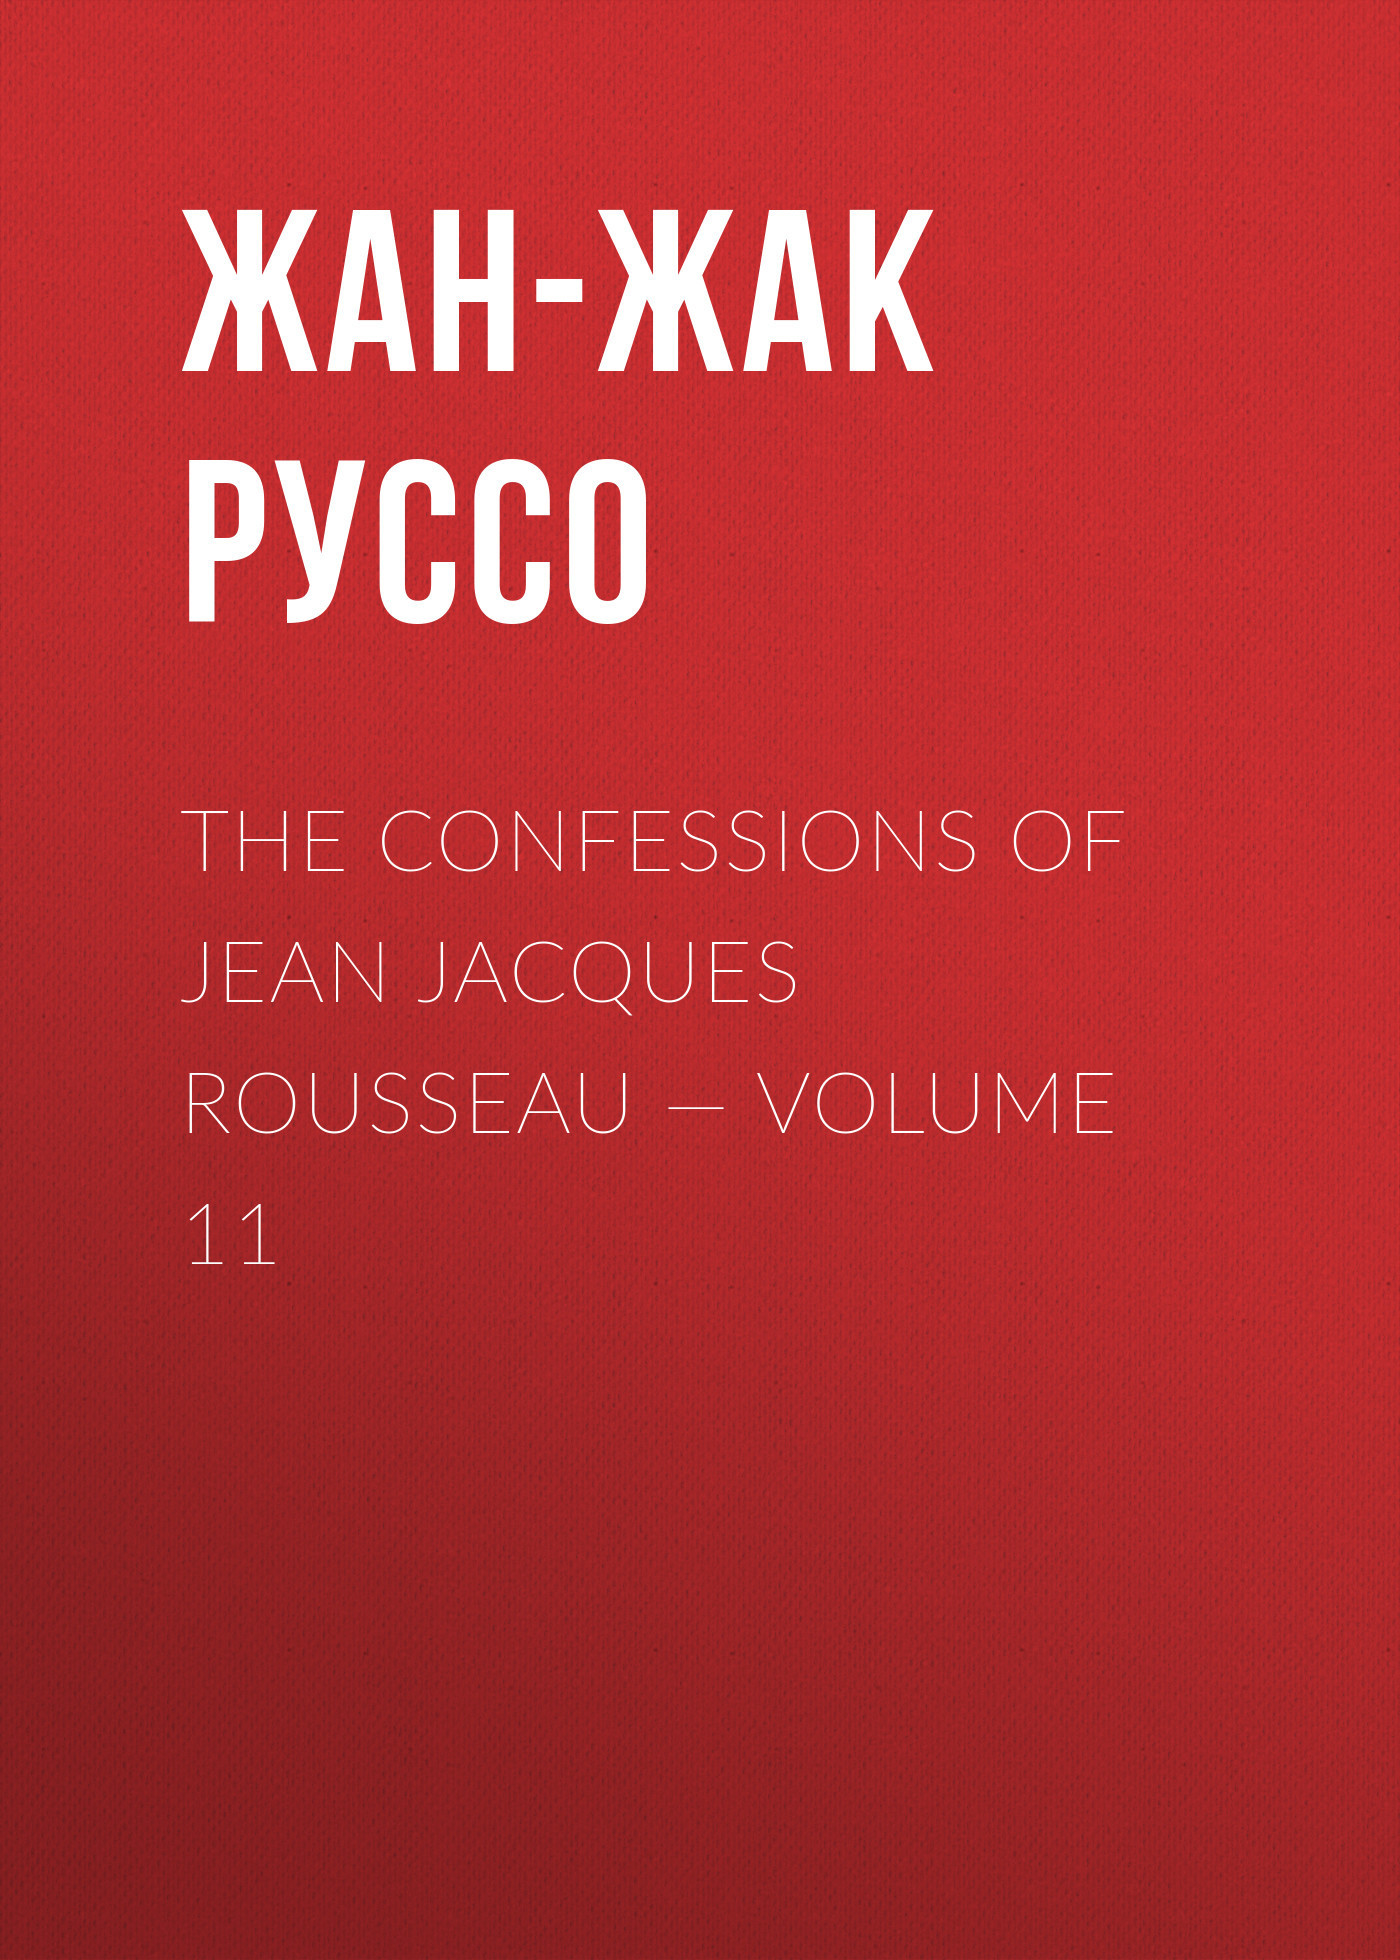 Жан-Жак Руссо The Confessions of Jean Jacques Rousseau — Volume 11 jean jacques rousseau memoires t 3